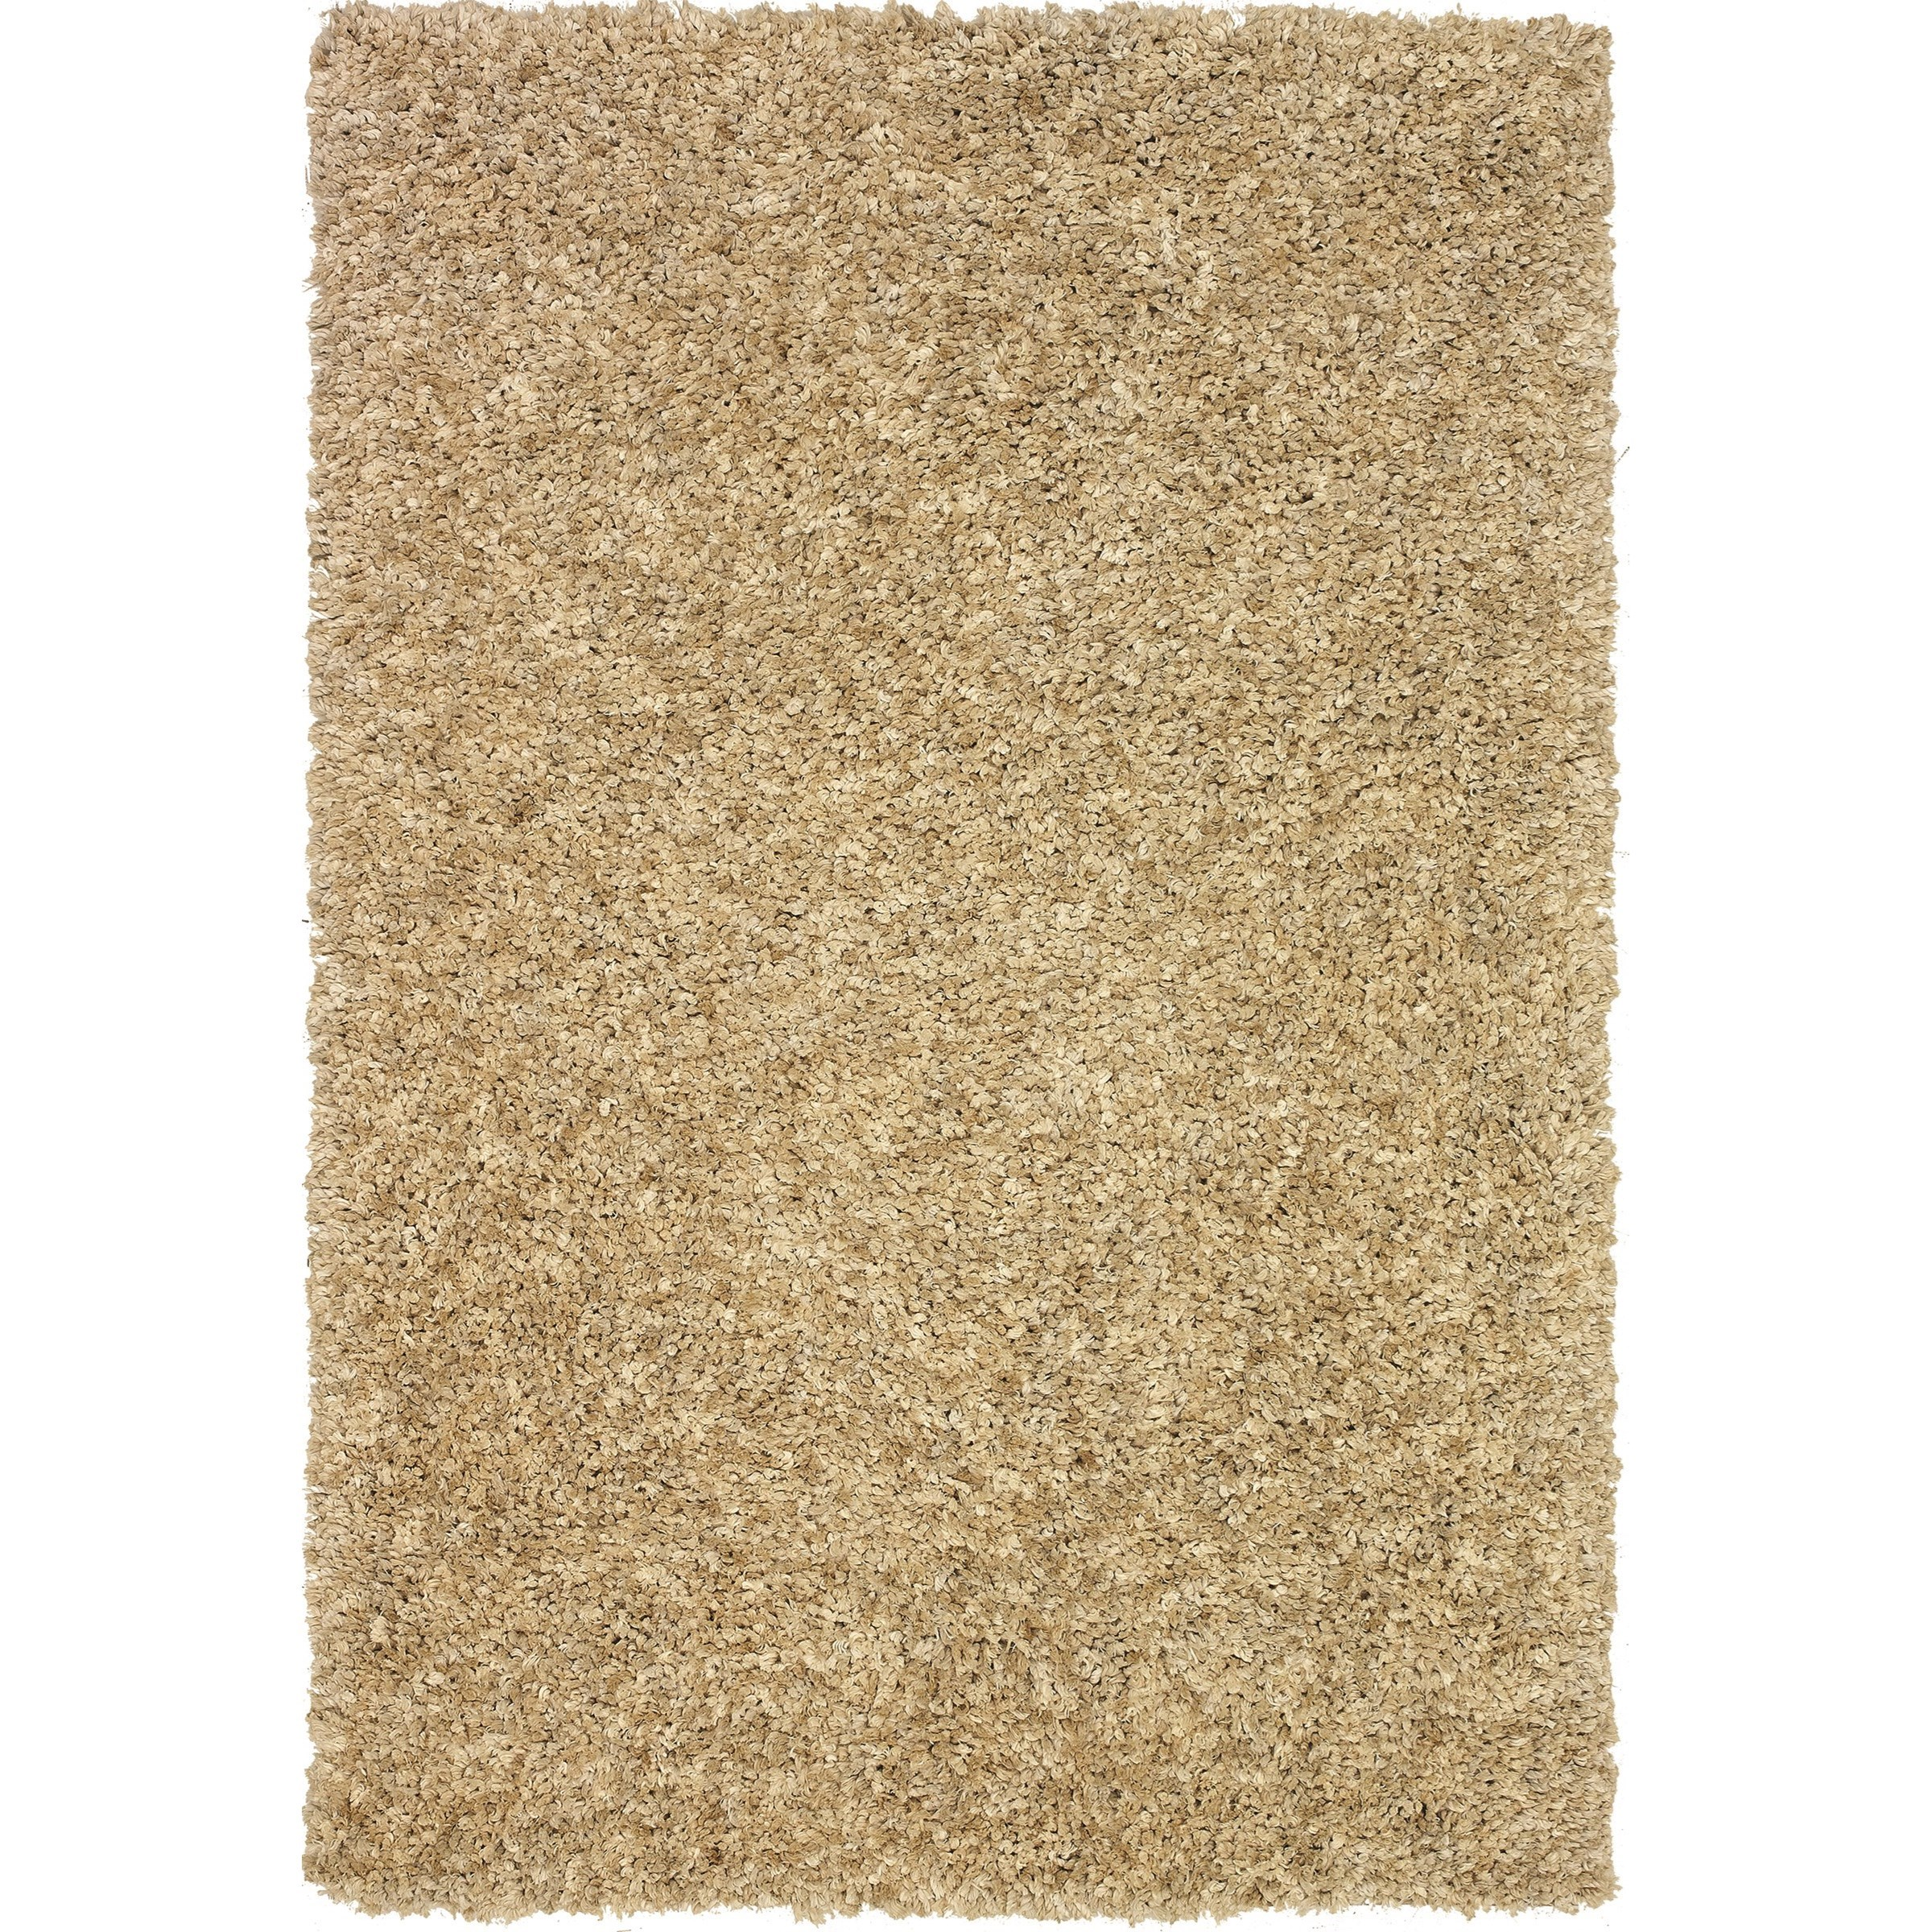 Utopia Sand 8'X10' Rug by Dalyn at Sadler's Home Furnishings